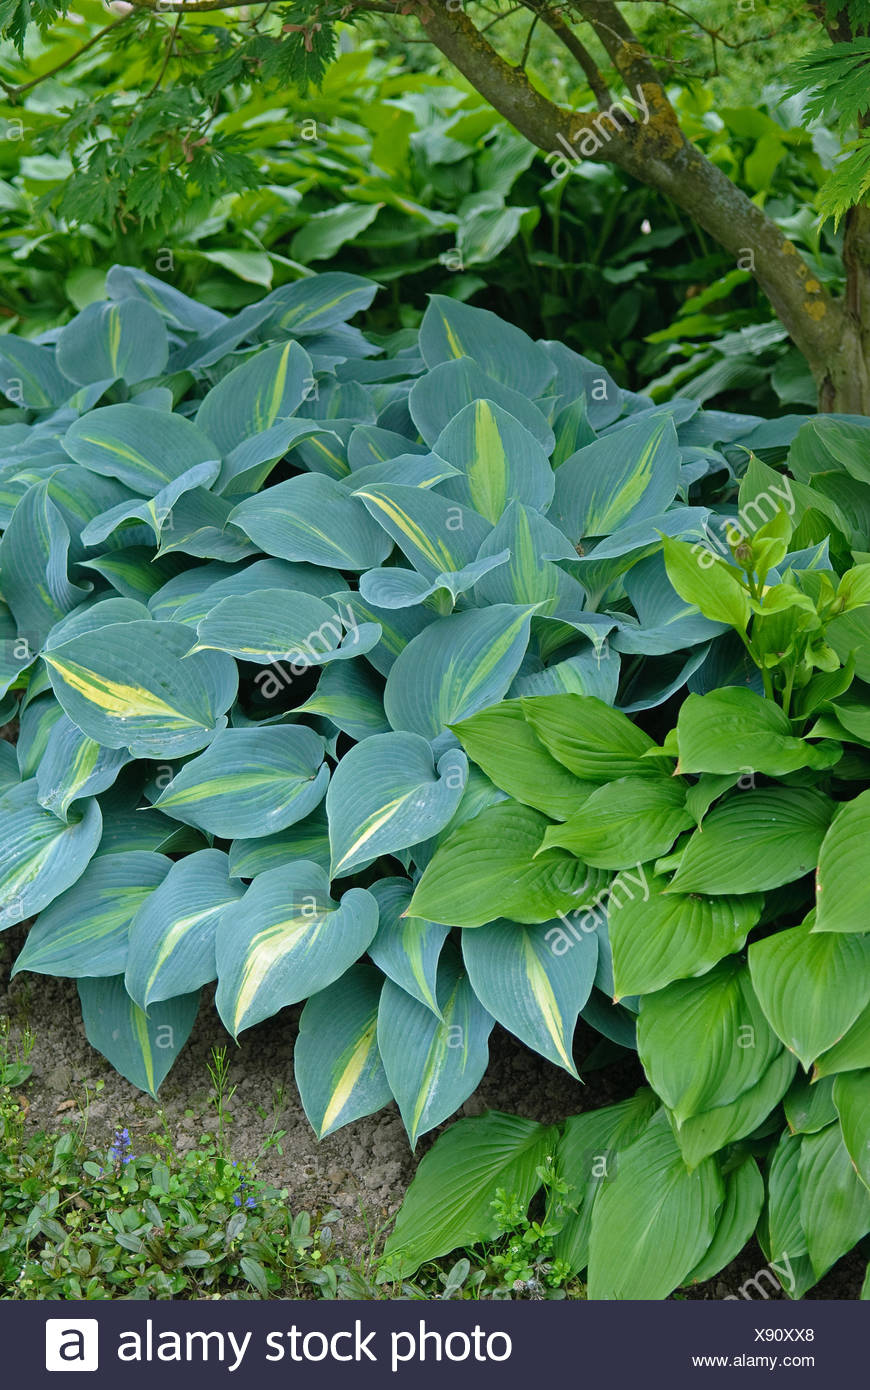 plantain lily (Hosta 'Touch of Class', Hosta Touch of Class), cultivar Touch of Class - Stock Image